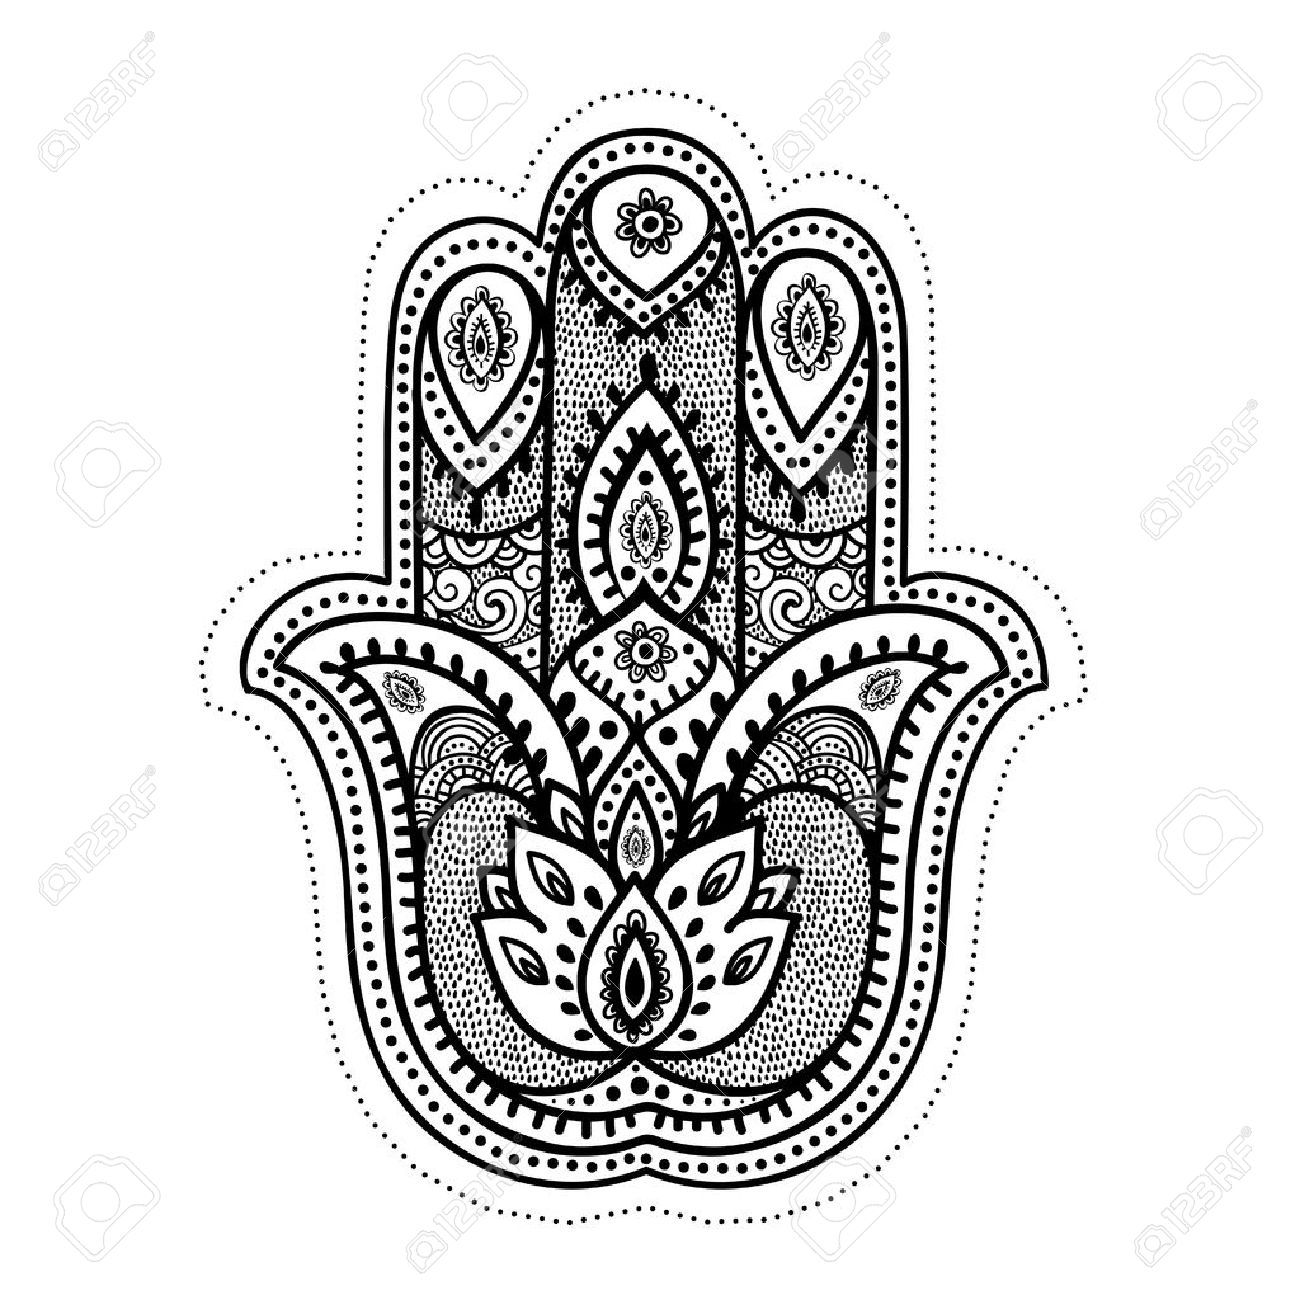 Hand buddha symbol gallery symbol and sign ideas 35369958 set of ornamental indian elements and symbols stock set of ornamental indian elements and symbols biocorpaavc